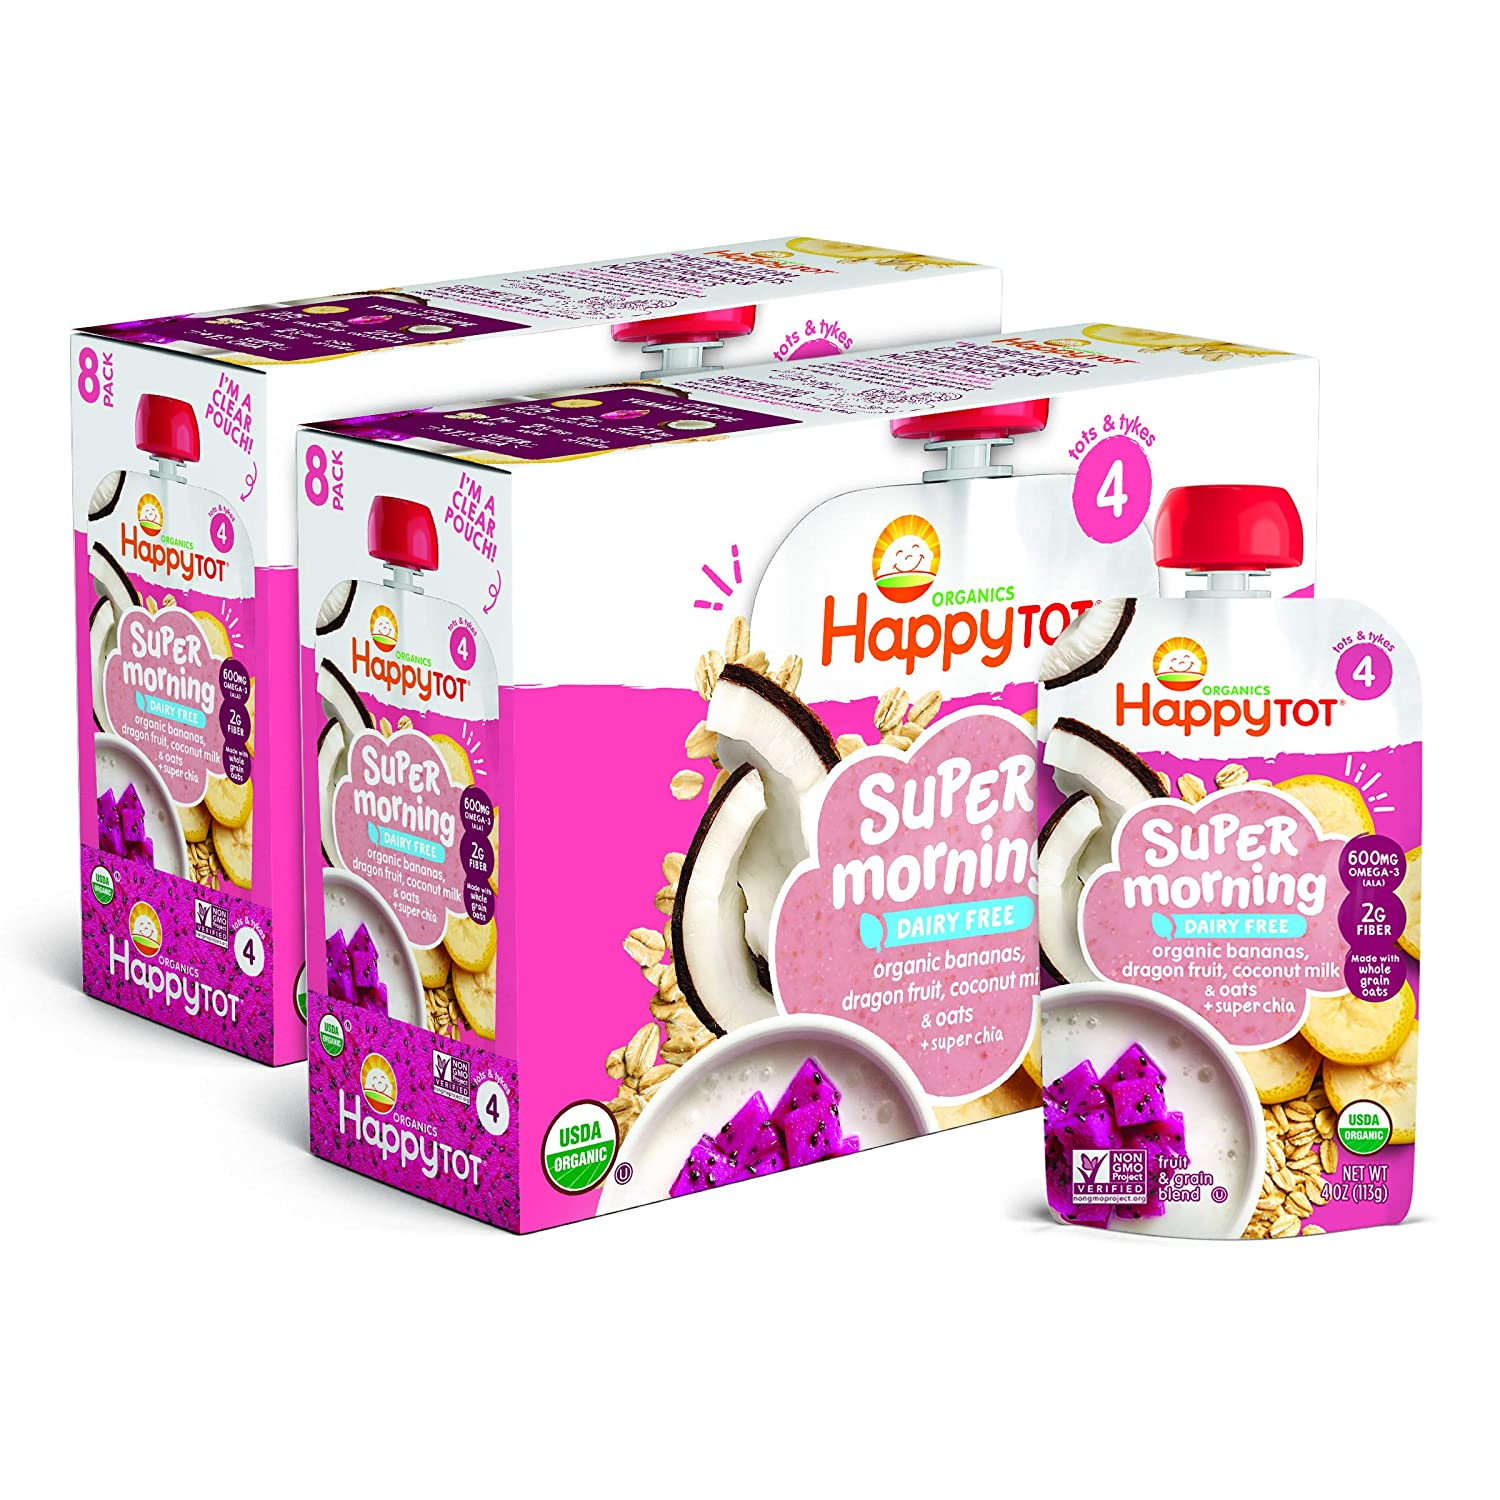 Happy Tot Organics Super Morning Stage 4 Dairy Free Food Pouch, Bananas, Dragon Fruit, Coconut Milk & Oats + Super Chia, 4 Ounces, Pack of 16